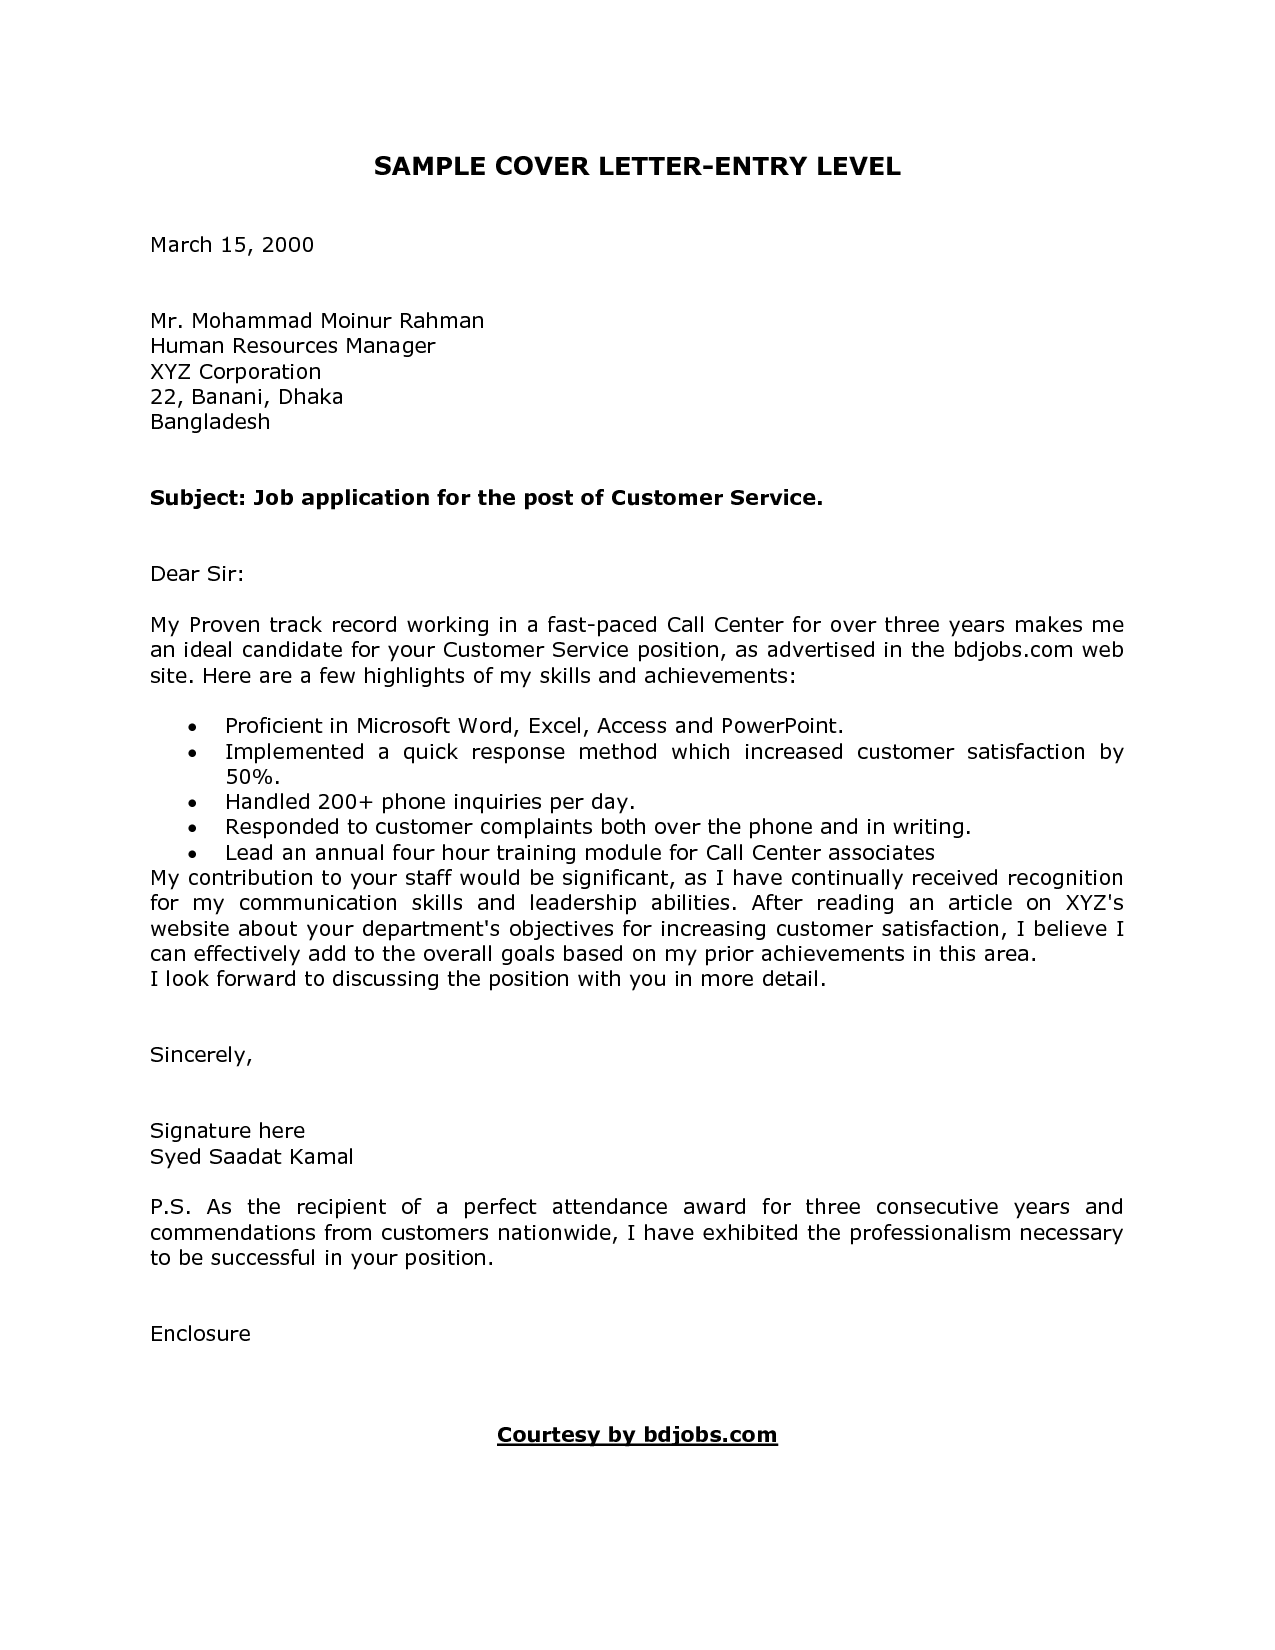 cover letter format creating executive samples example good for job application the best - Best Cover Letters For Resume